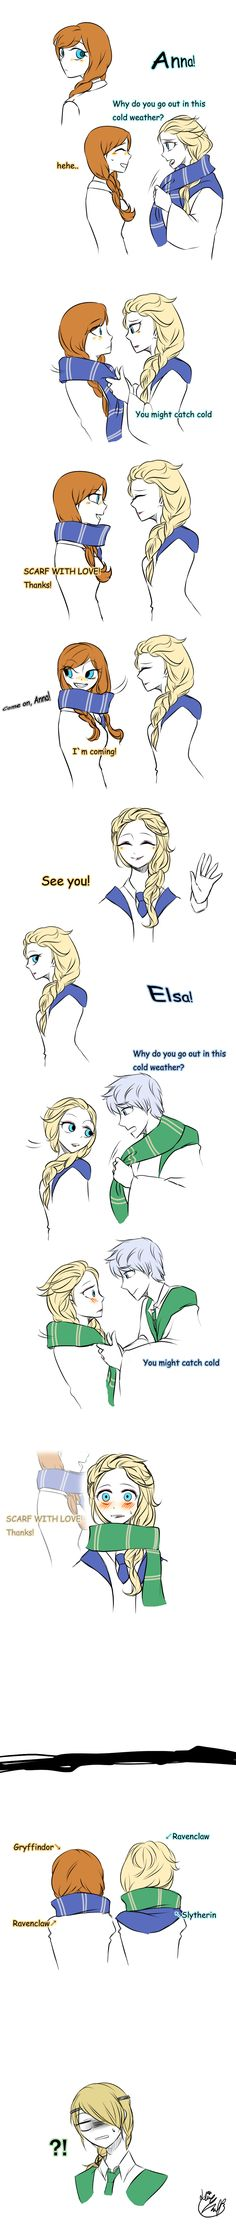 Scarf by Lime-Hael on deviantART | Frozen's Elsa and Anna, Rise of the Guardians' Jack Frost, and How to Train Your Dragon's Astrid | J.K. Rowling's Harry Potter